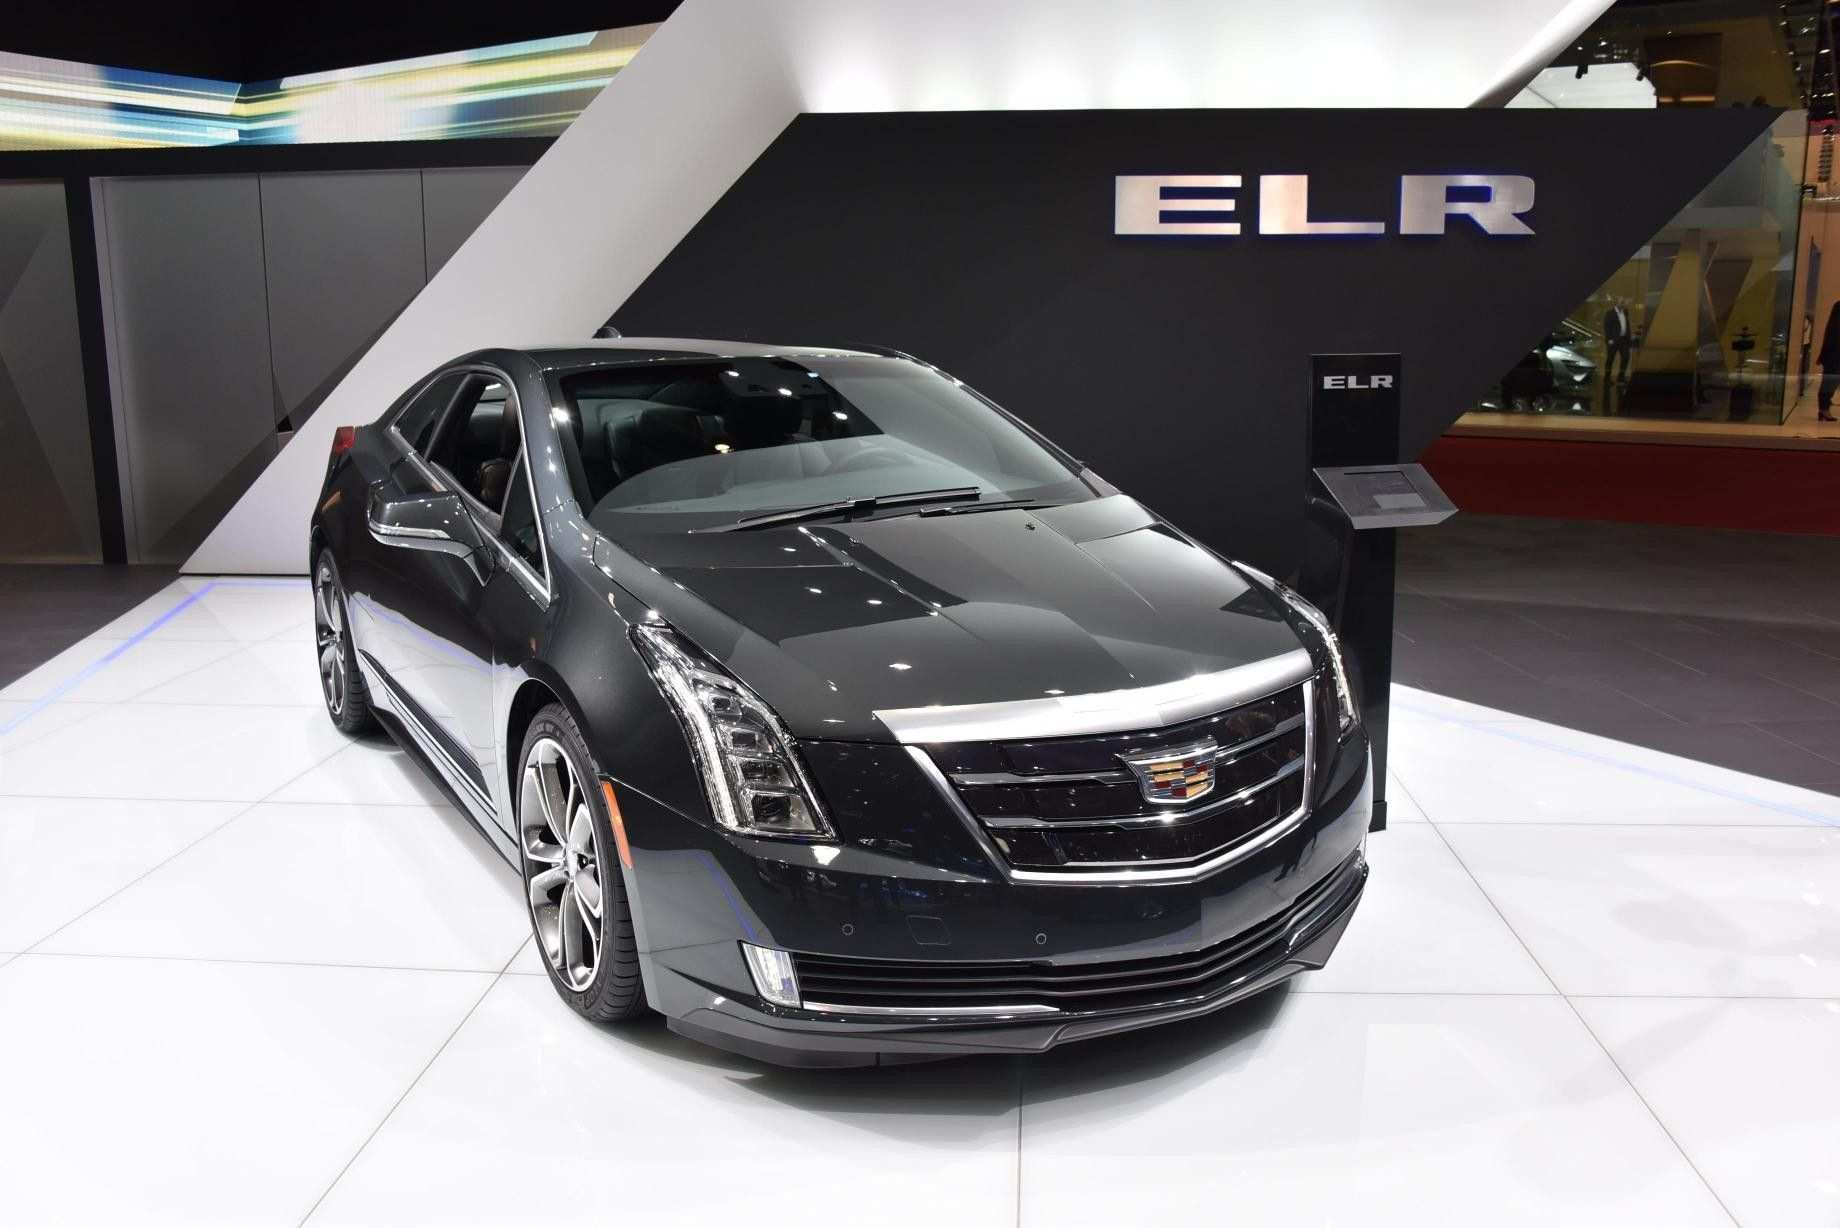 84 All New 2019 Cadillac ELR S Price Design And Review